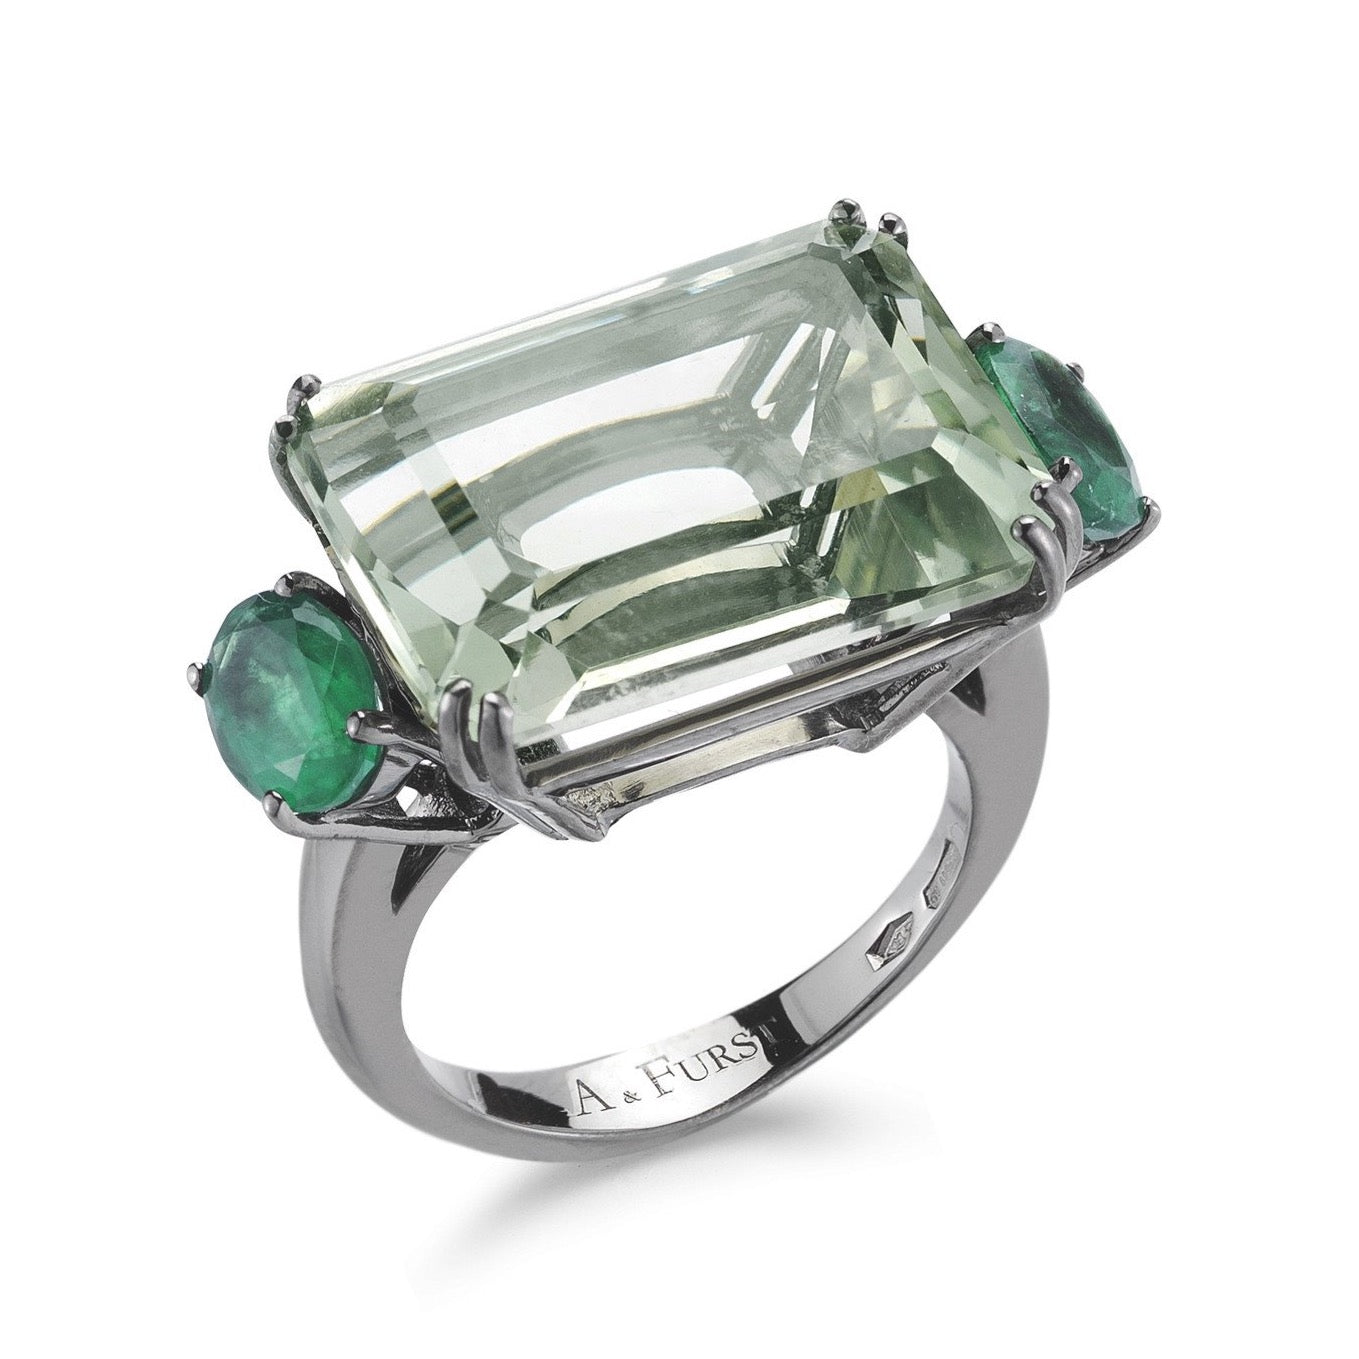 A & Furst - Party - Cocktail Ring with Prasiolite and Emeralds, 18k Blackened Gold.